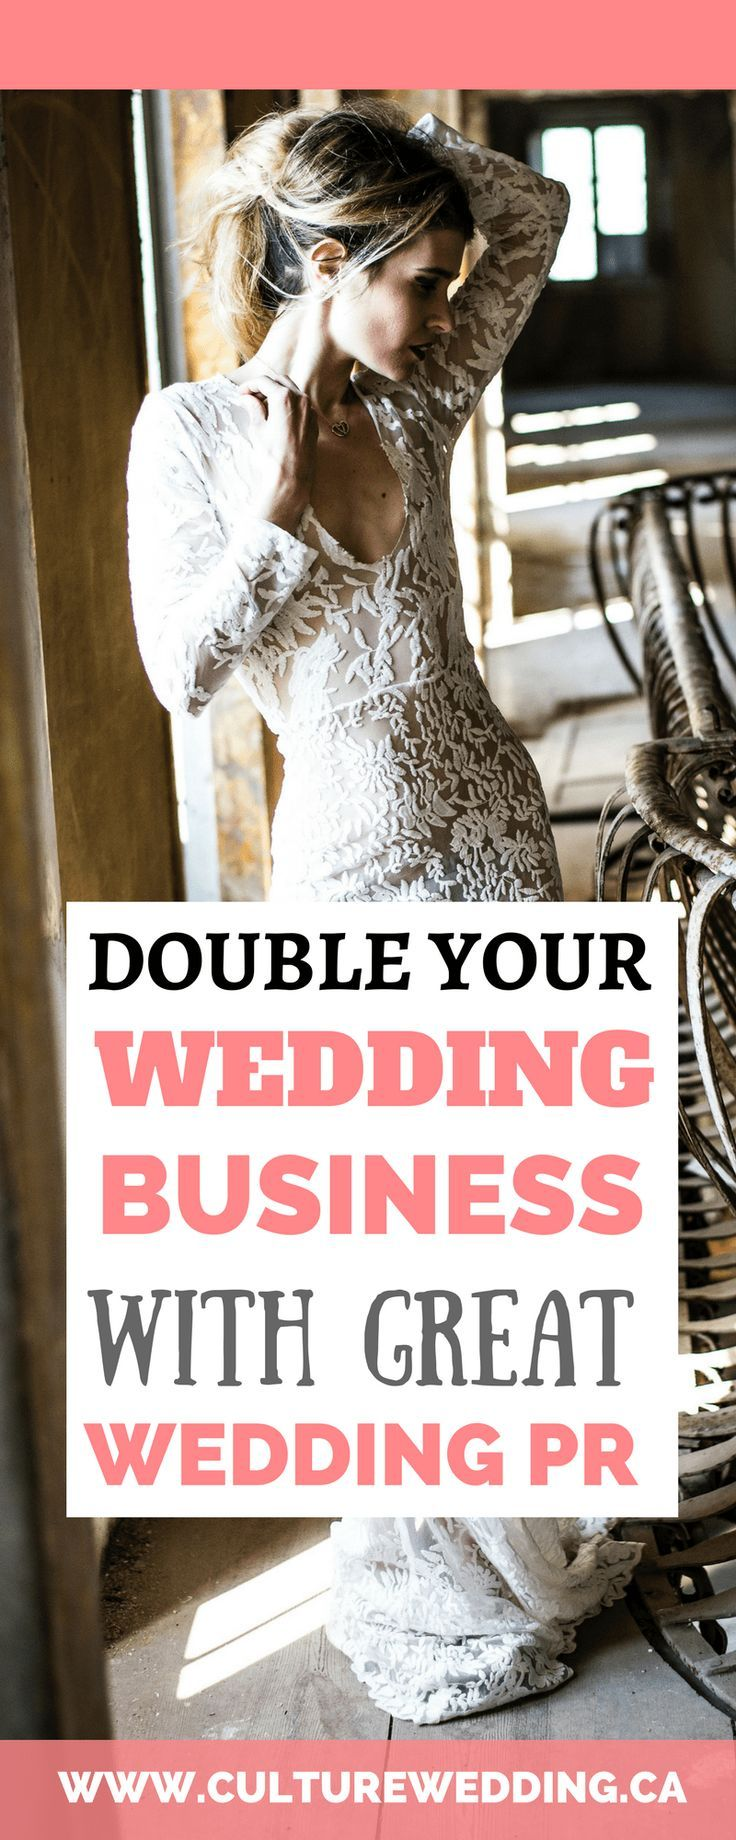 Wedding Pr For Your Business Book More Clients By Adding Publicity Marketing How To Start An Event Planning